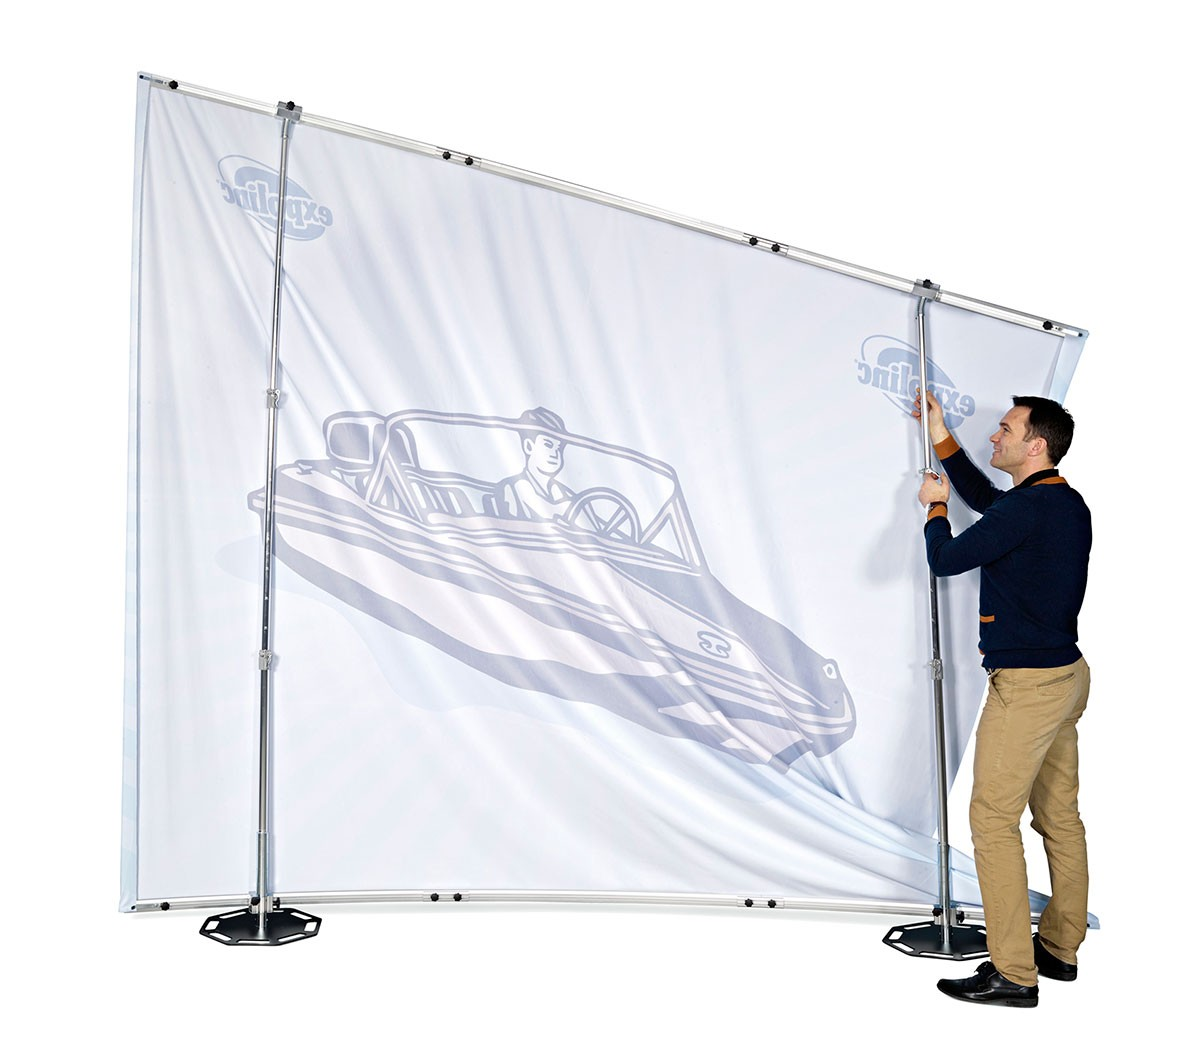 Expolinc Fabric System 8x8 Outer Curve Wall